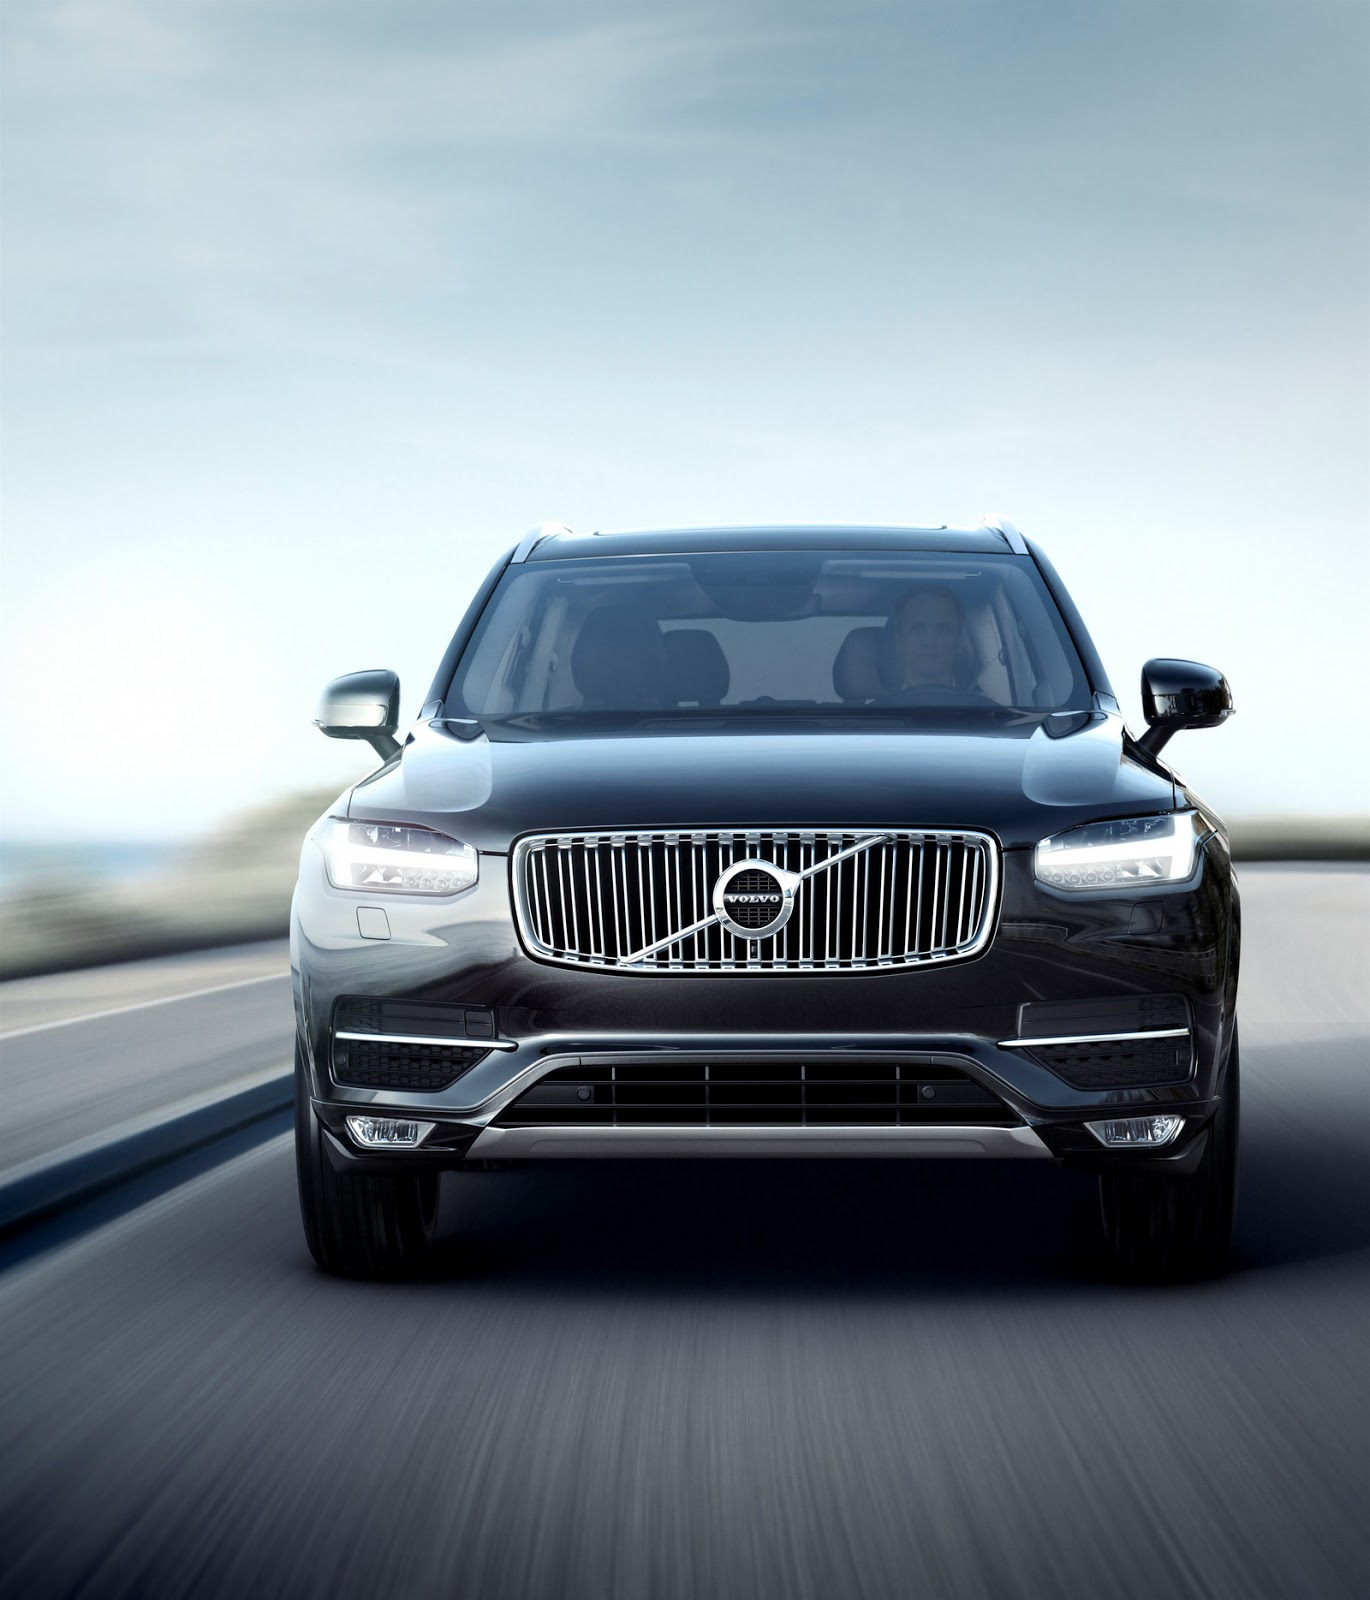 Volvo Xc90 Price: Get A Look At The 2015 Volvo XC90 Through 163 HD Photos